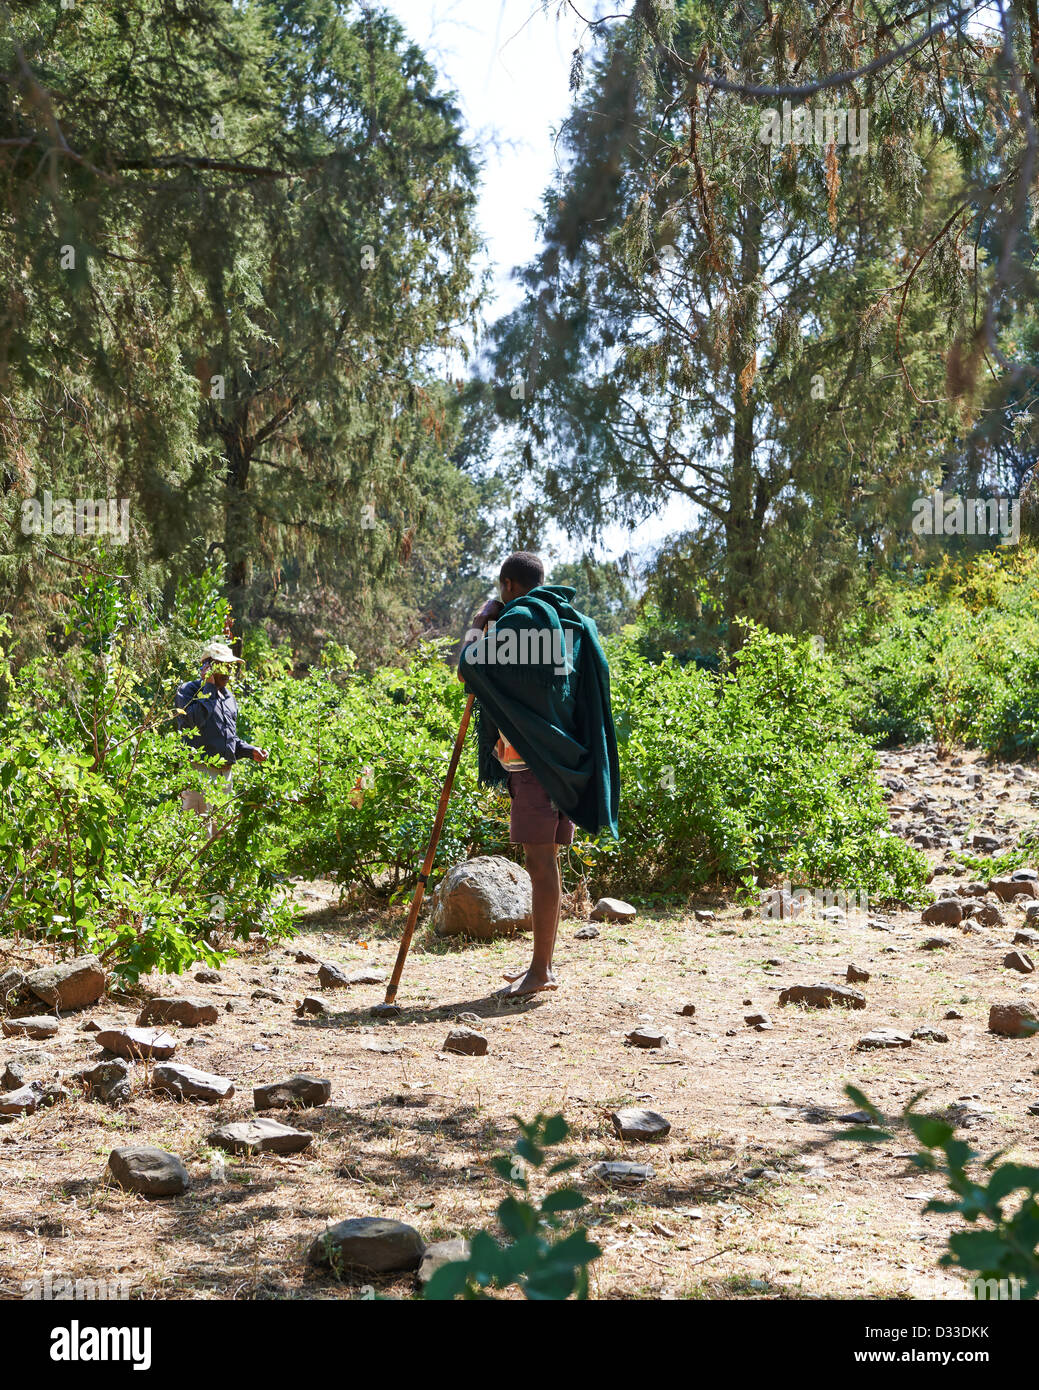 A local man wrapped in green cloth stands stoically with a walking stick before the bush - Stock Image